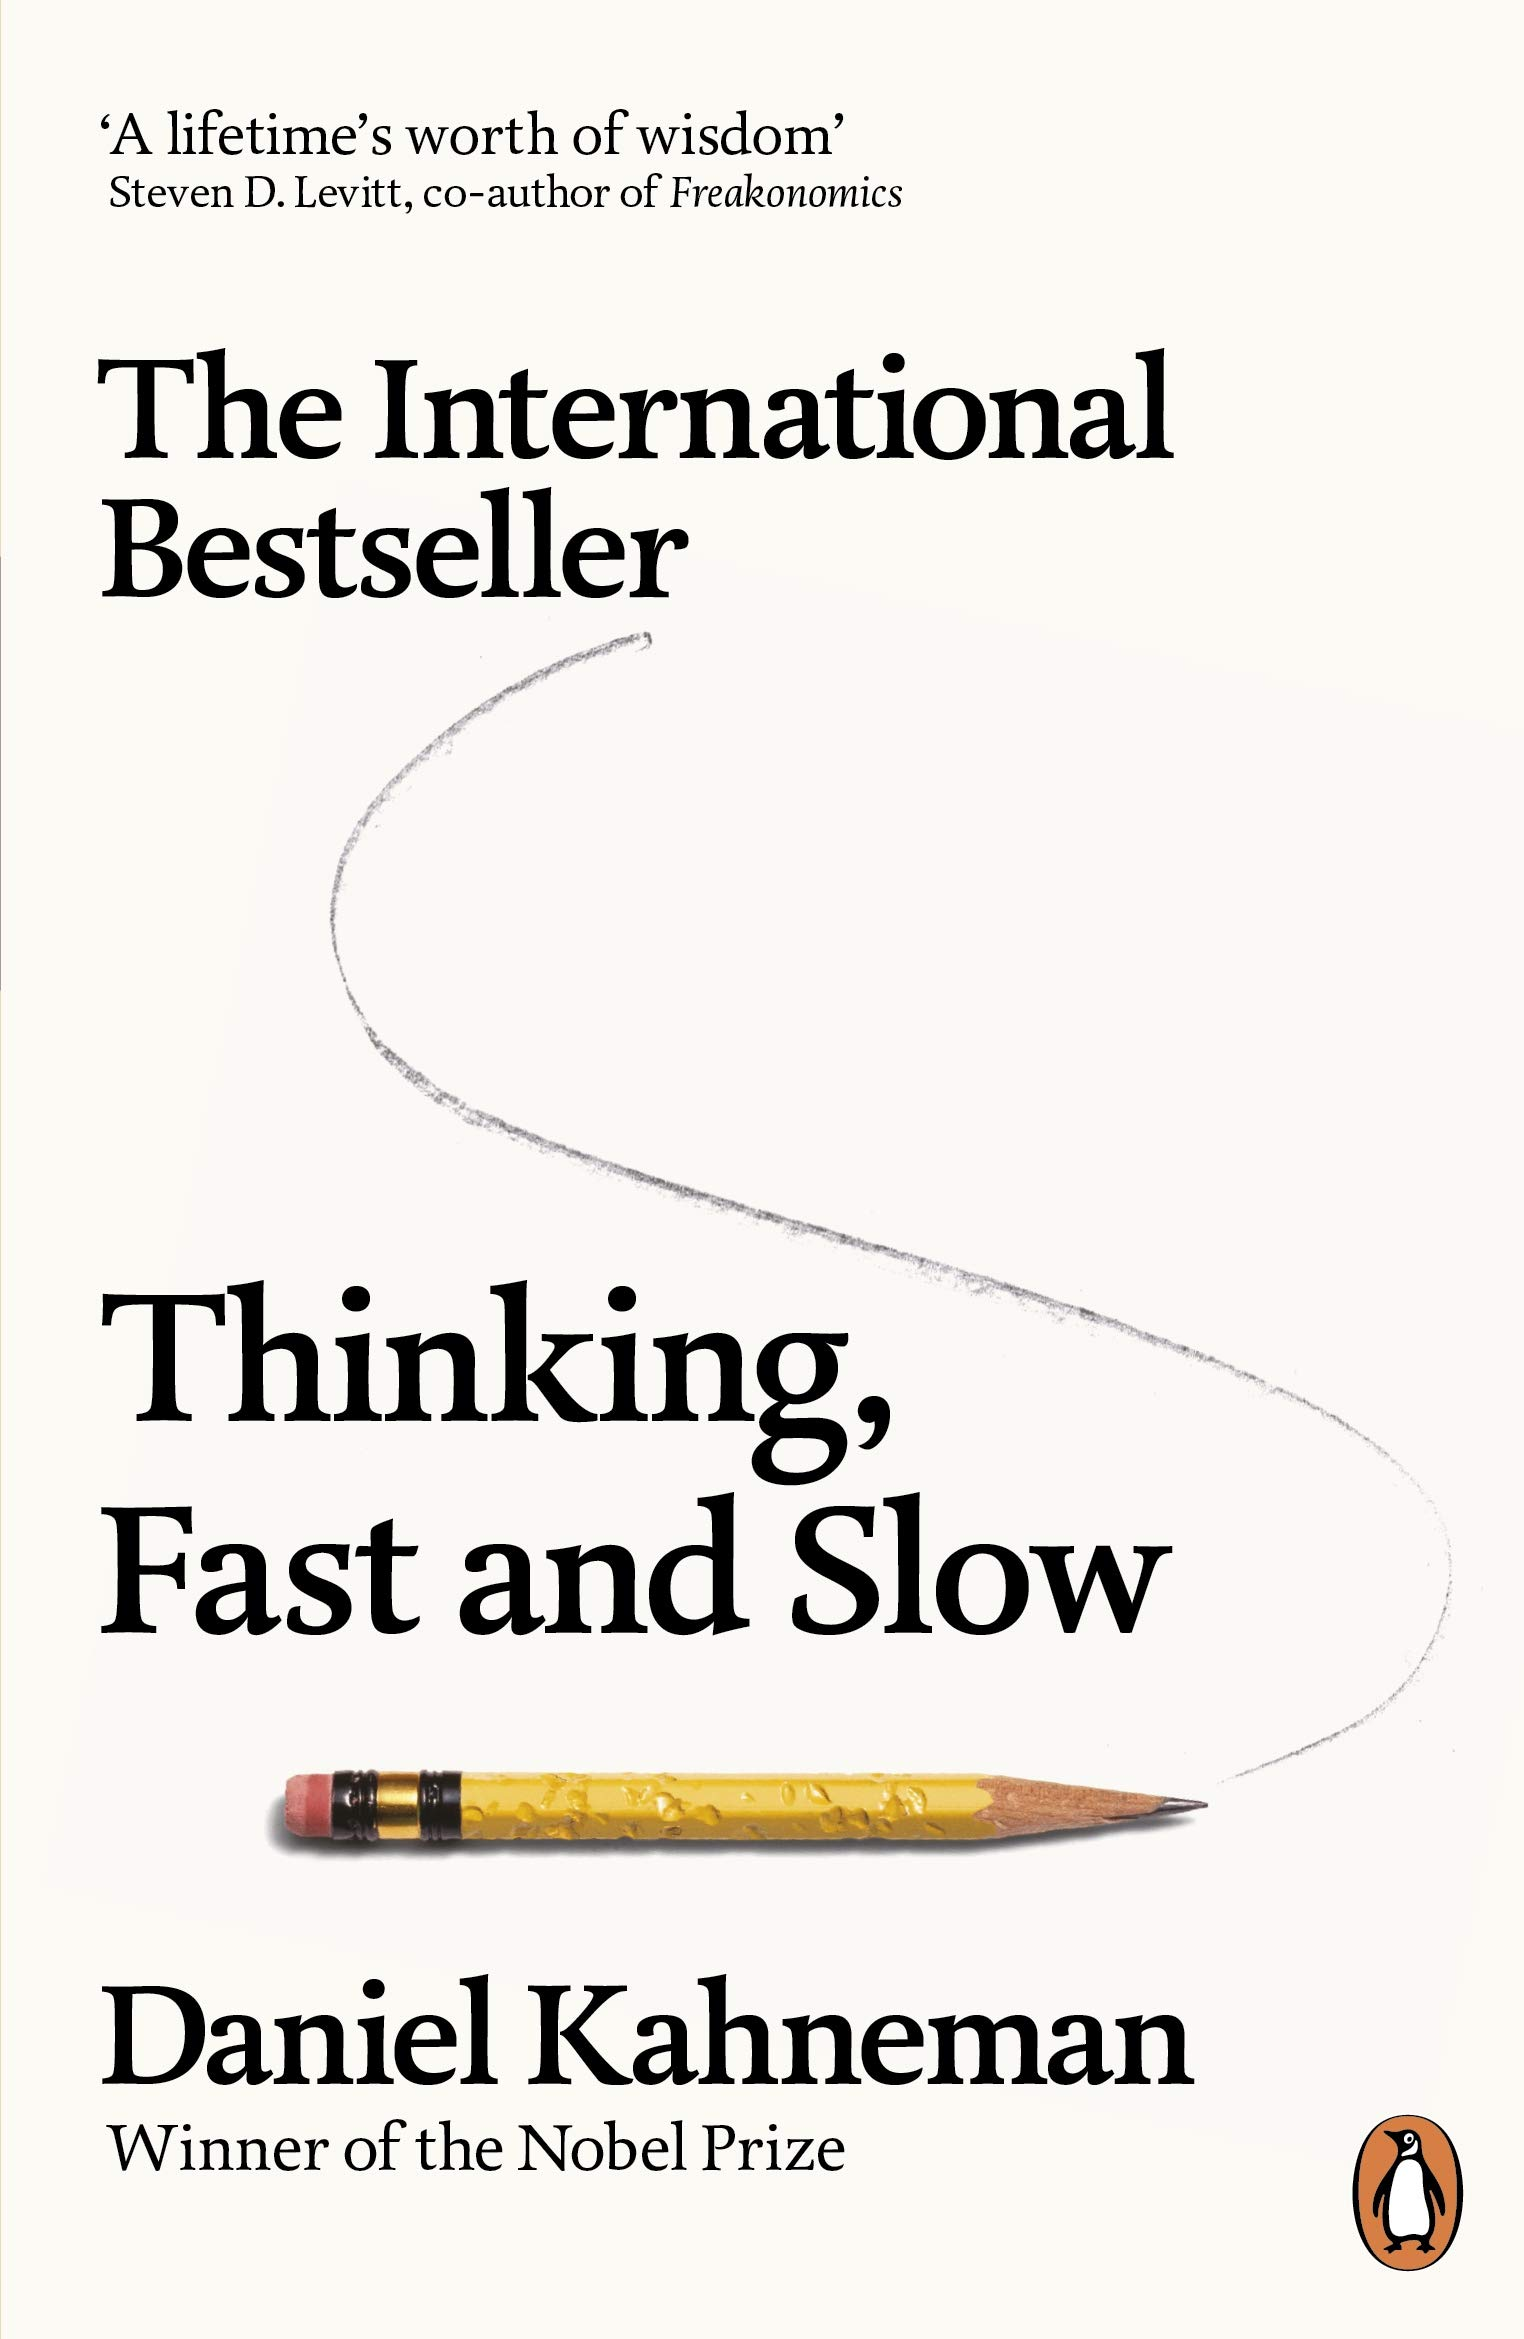 [#INTELLIGENCE] Livre: « Thinking, Fast and Slow » (2012)